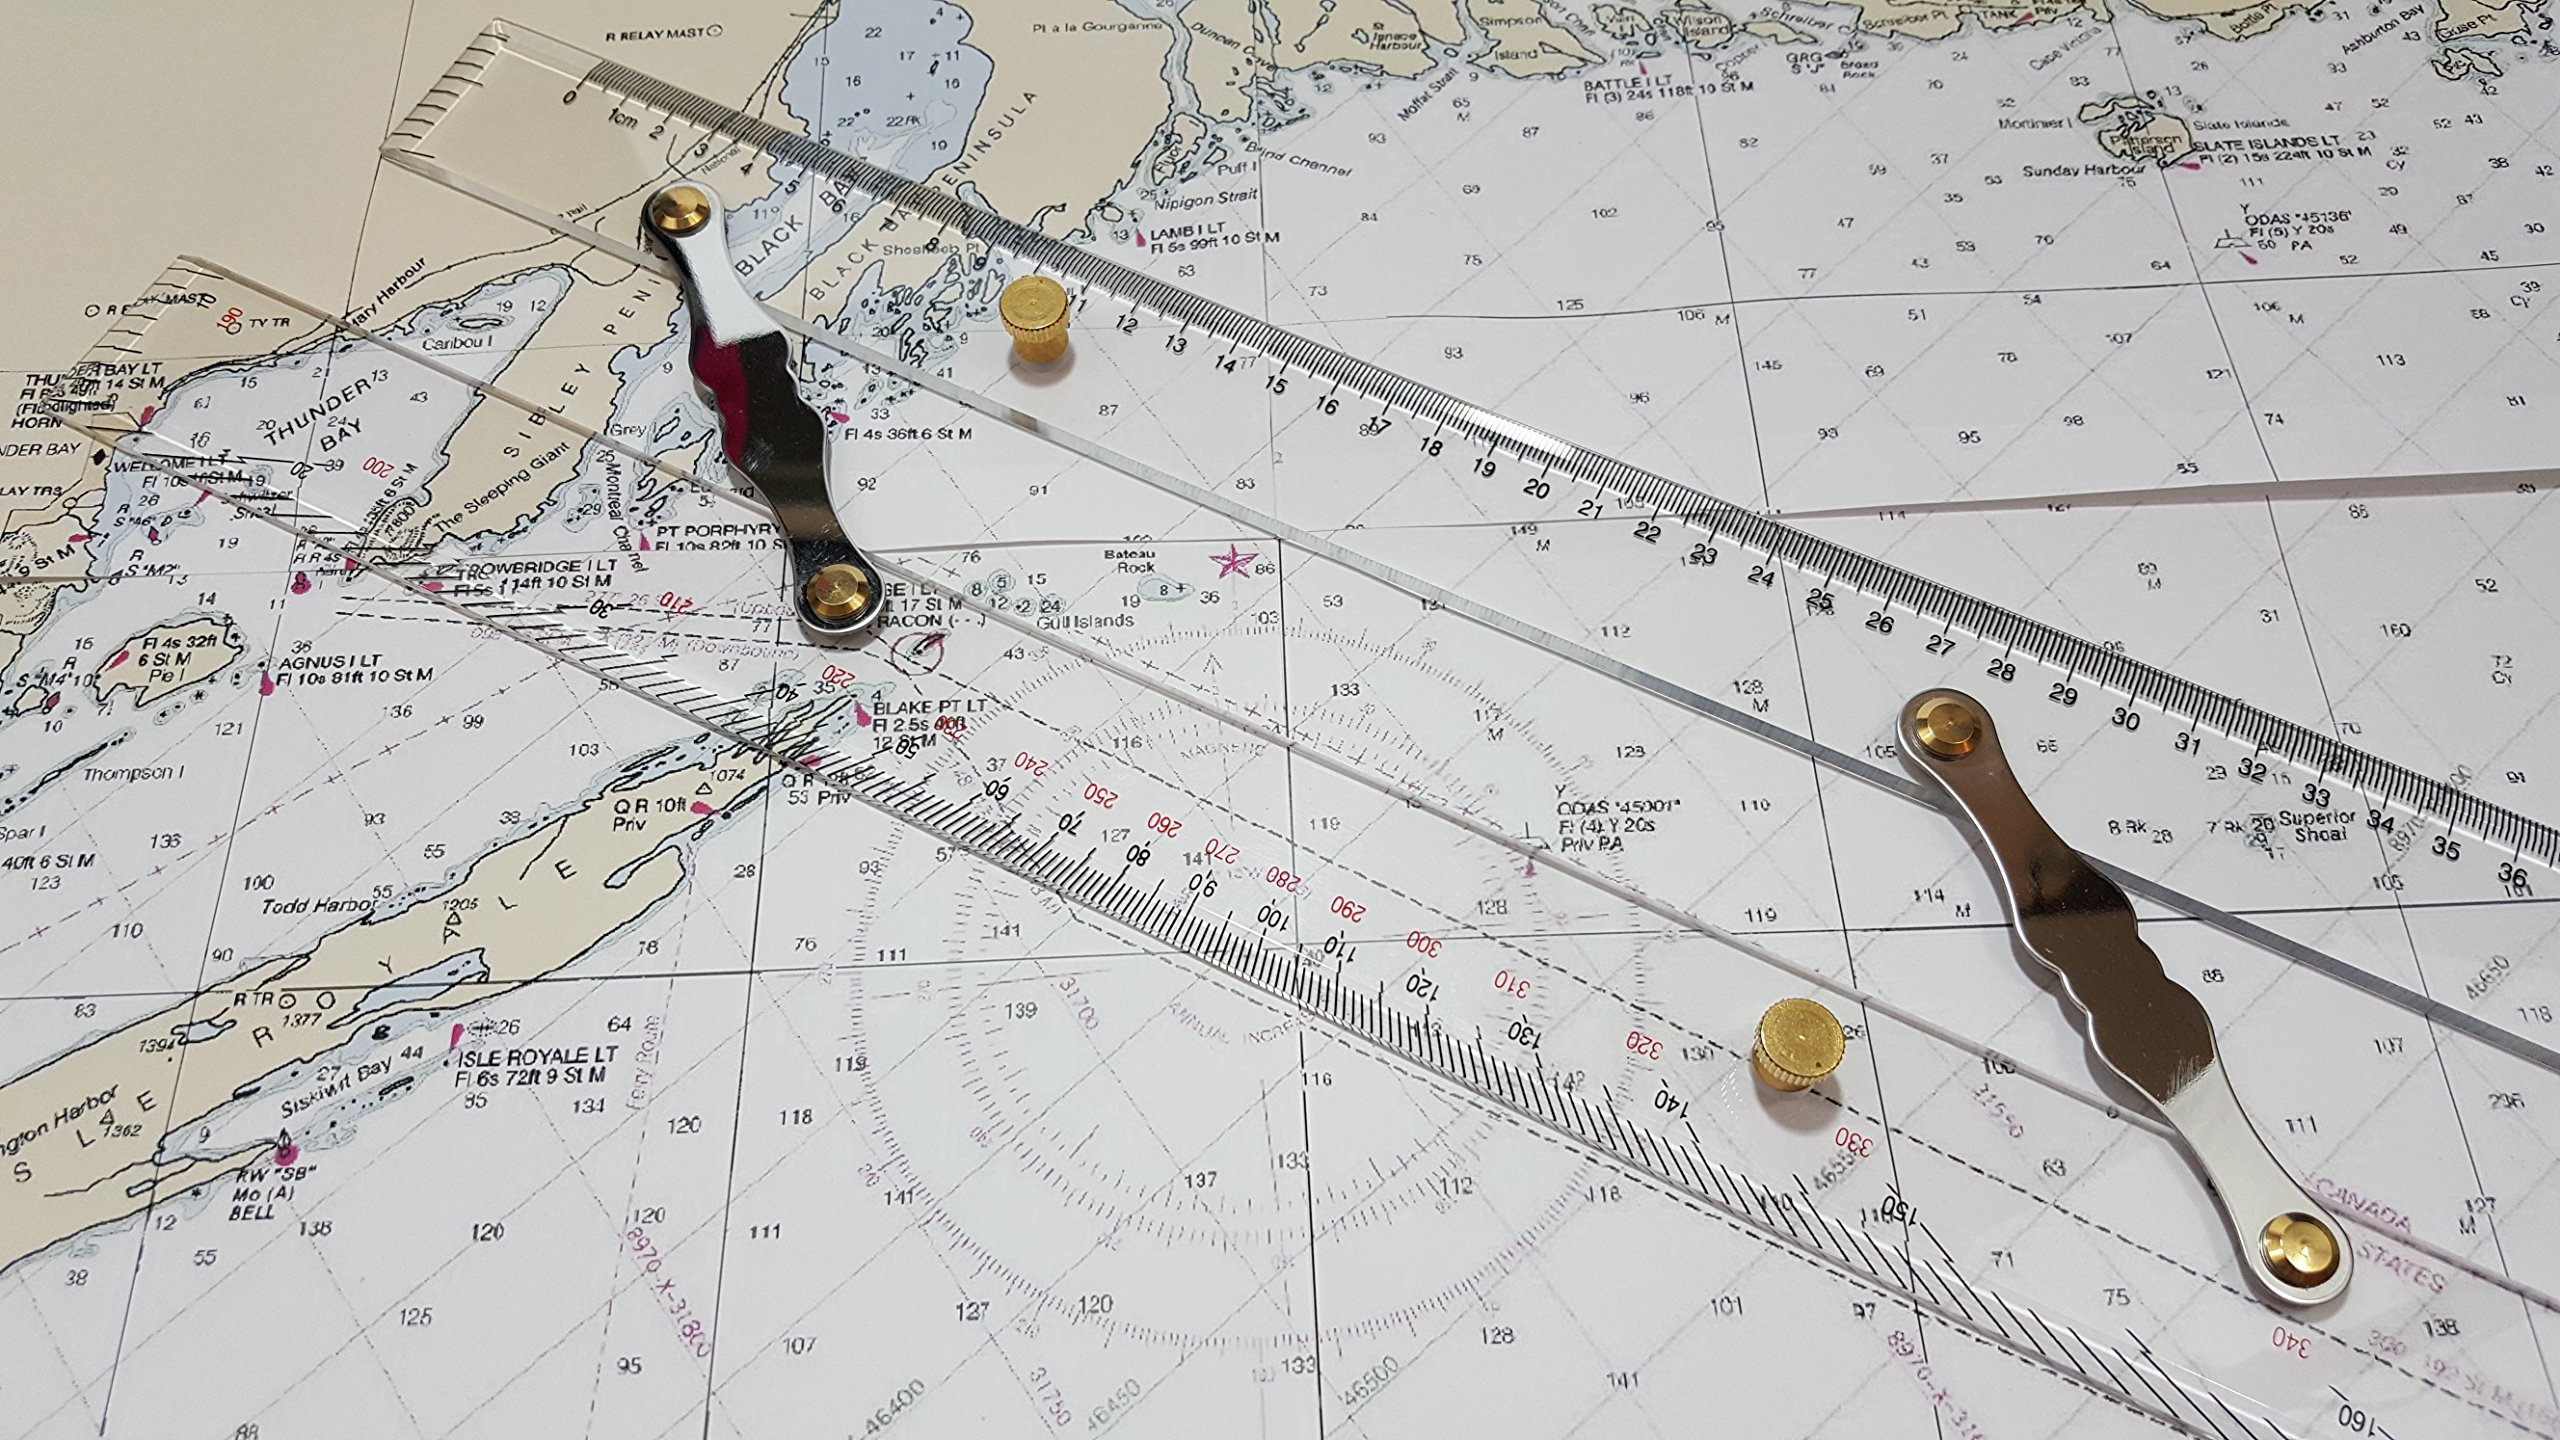 Parallel Ruler by Ferocious Viking for Navigation on Sea Charts with Ruler and Protractor Scales and brass buttons, aluminium links and transparent acrylic plastic for accurate chart plotting